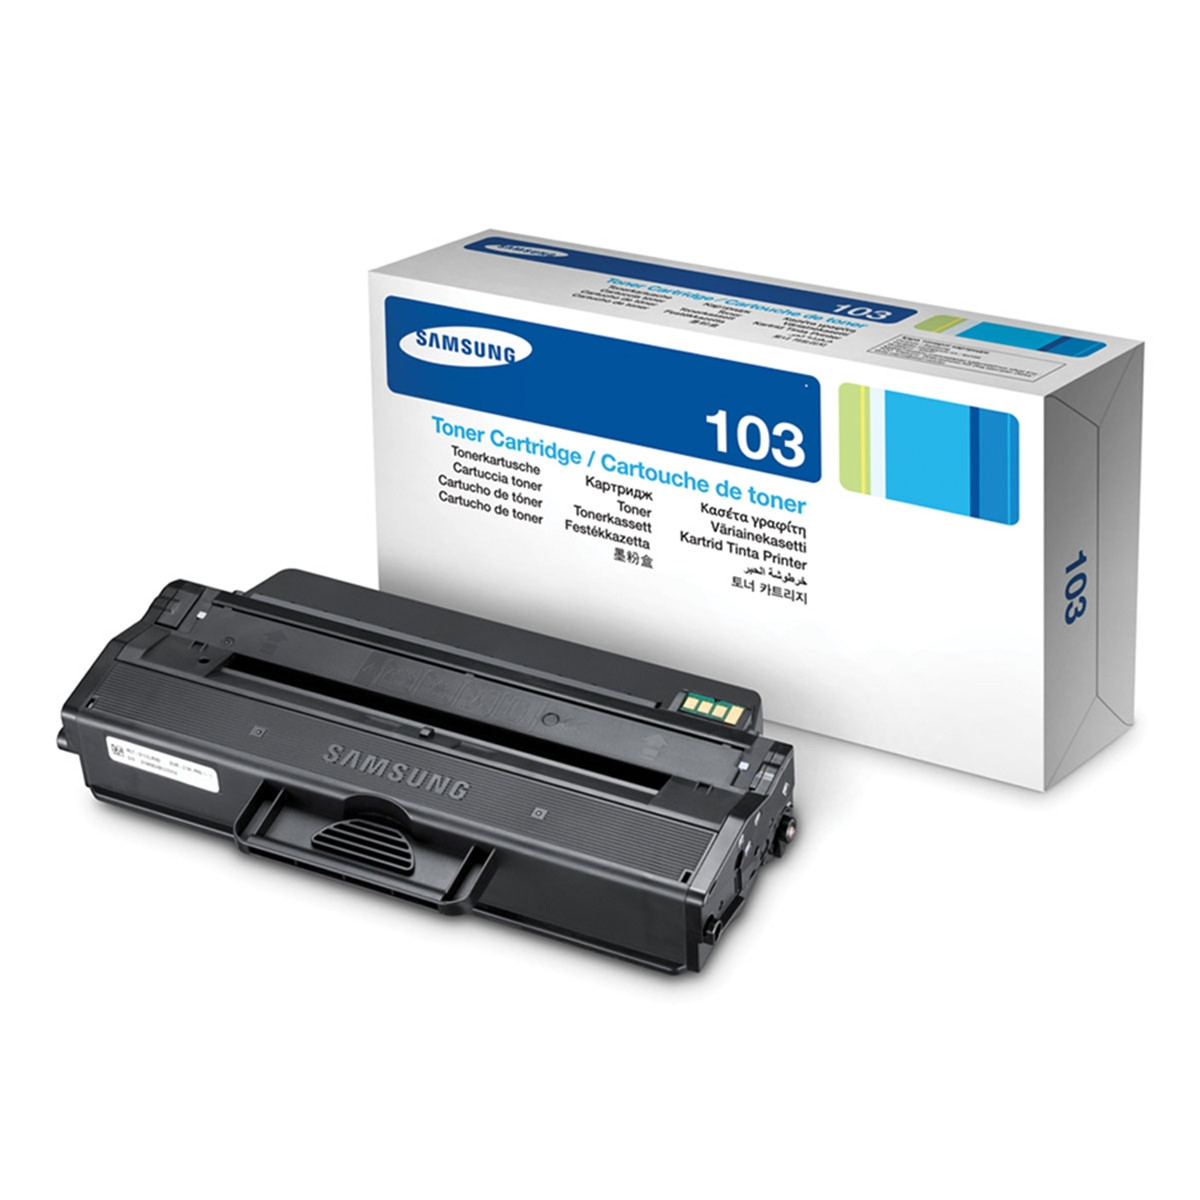 Toner Samsung MLT-D103L | ML2955ND SCX4729FD | Original 2.5k